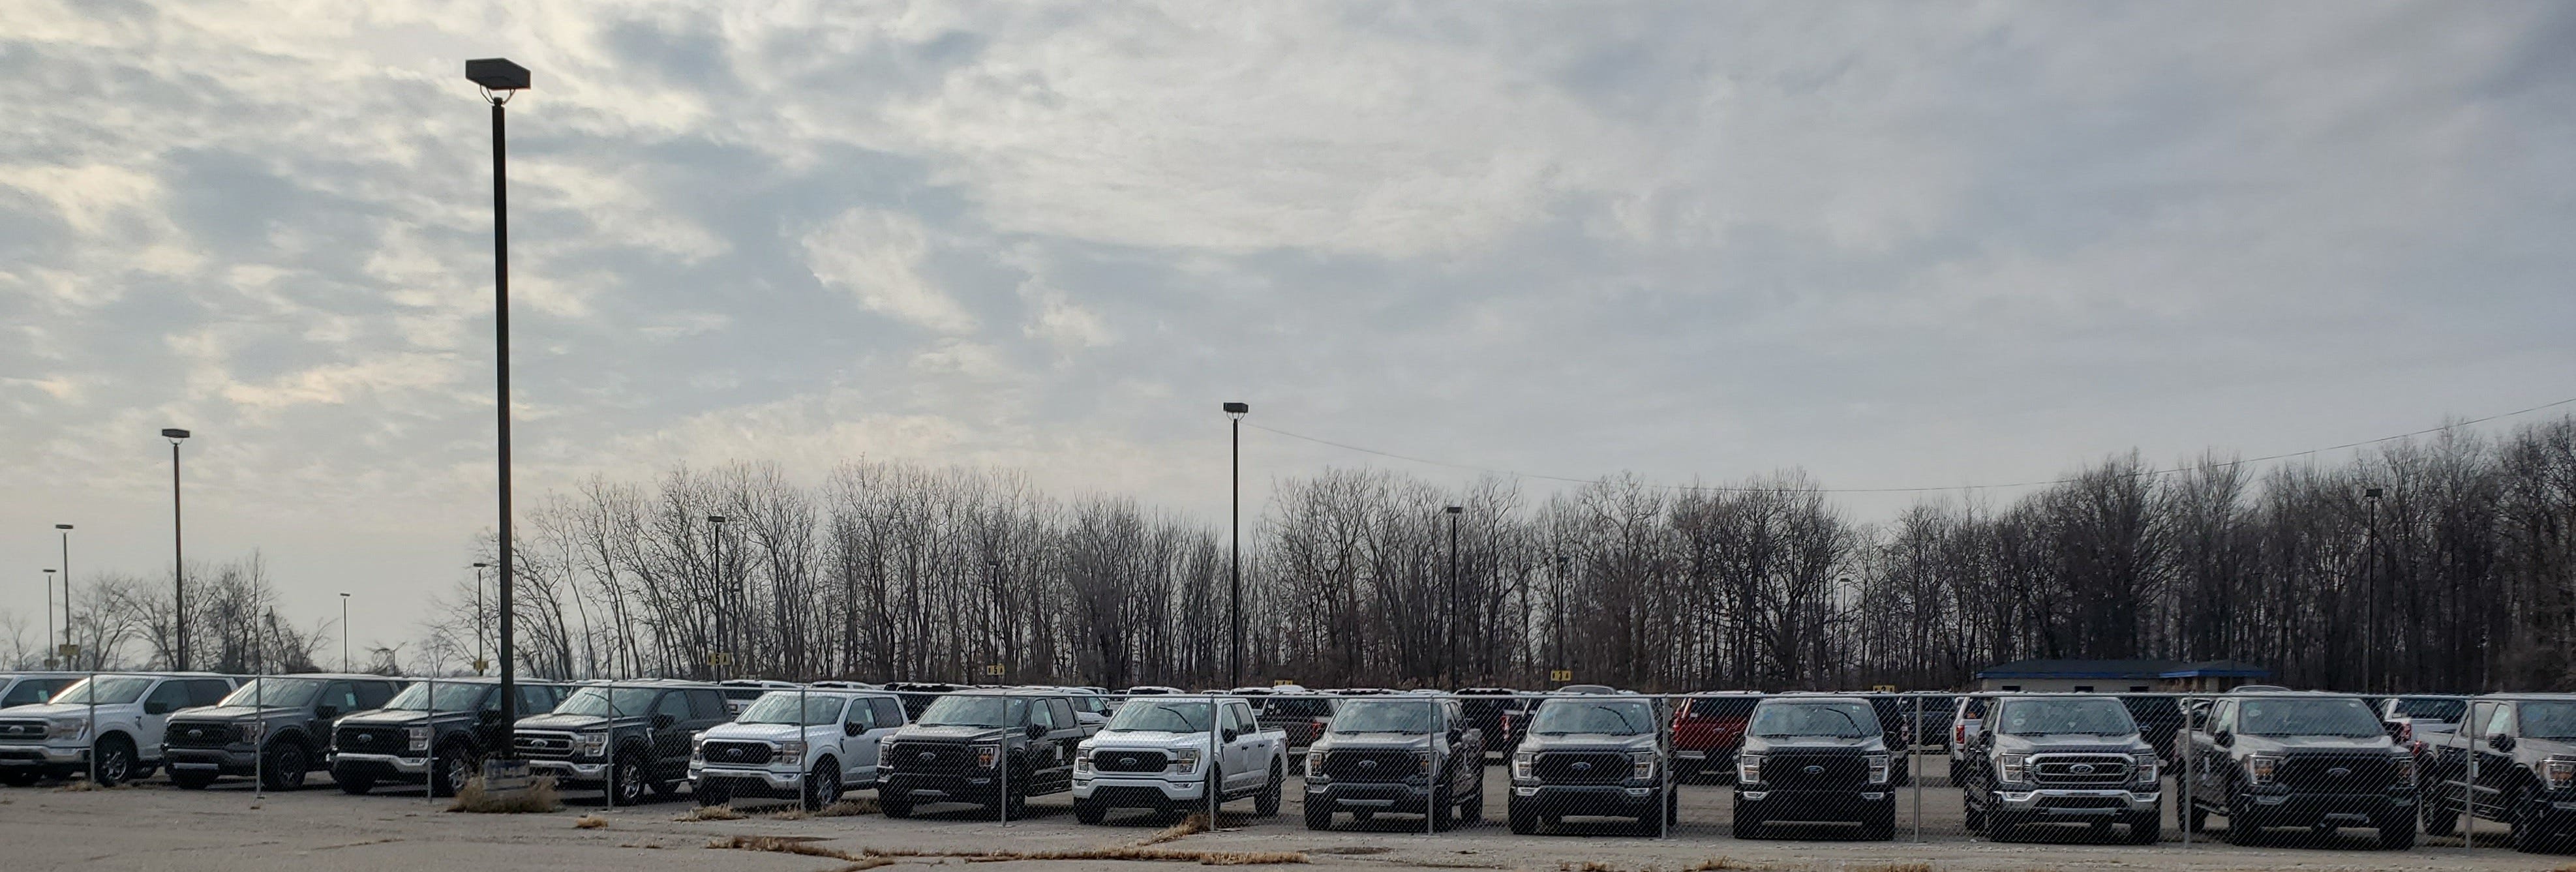 Ford stockpiling thousands of new F-150 pickups near Detroit airport